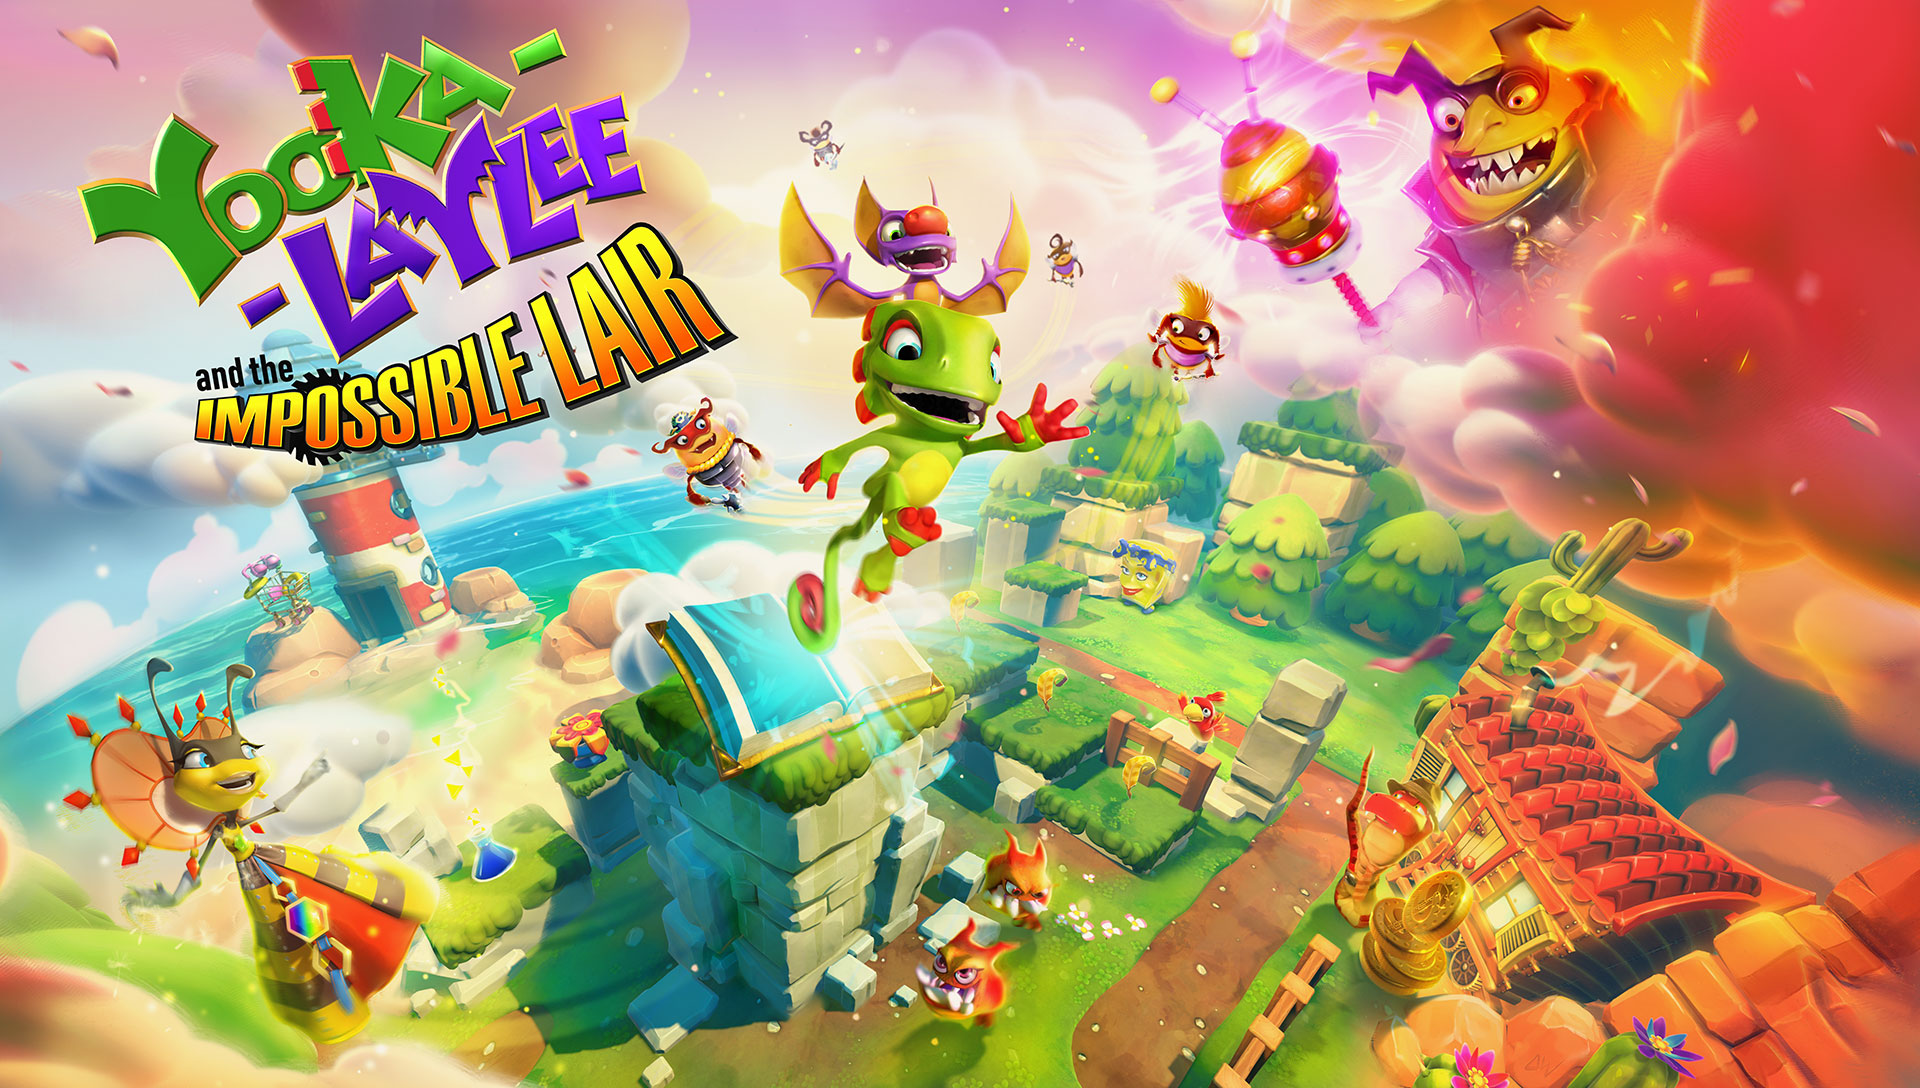 Introducing Yooka-Laylee and the Impossible Lair!